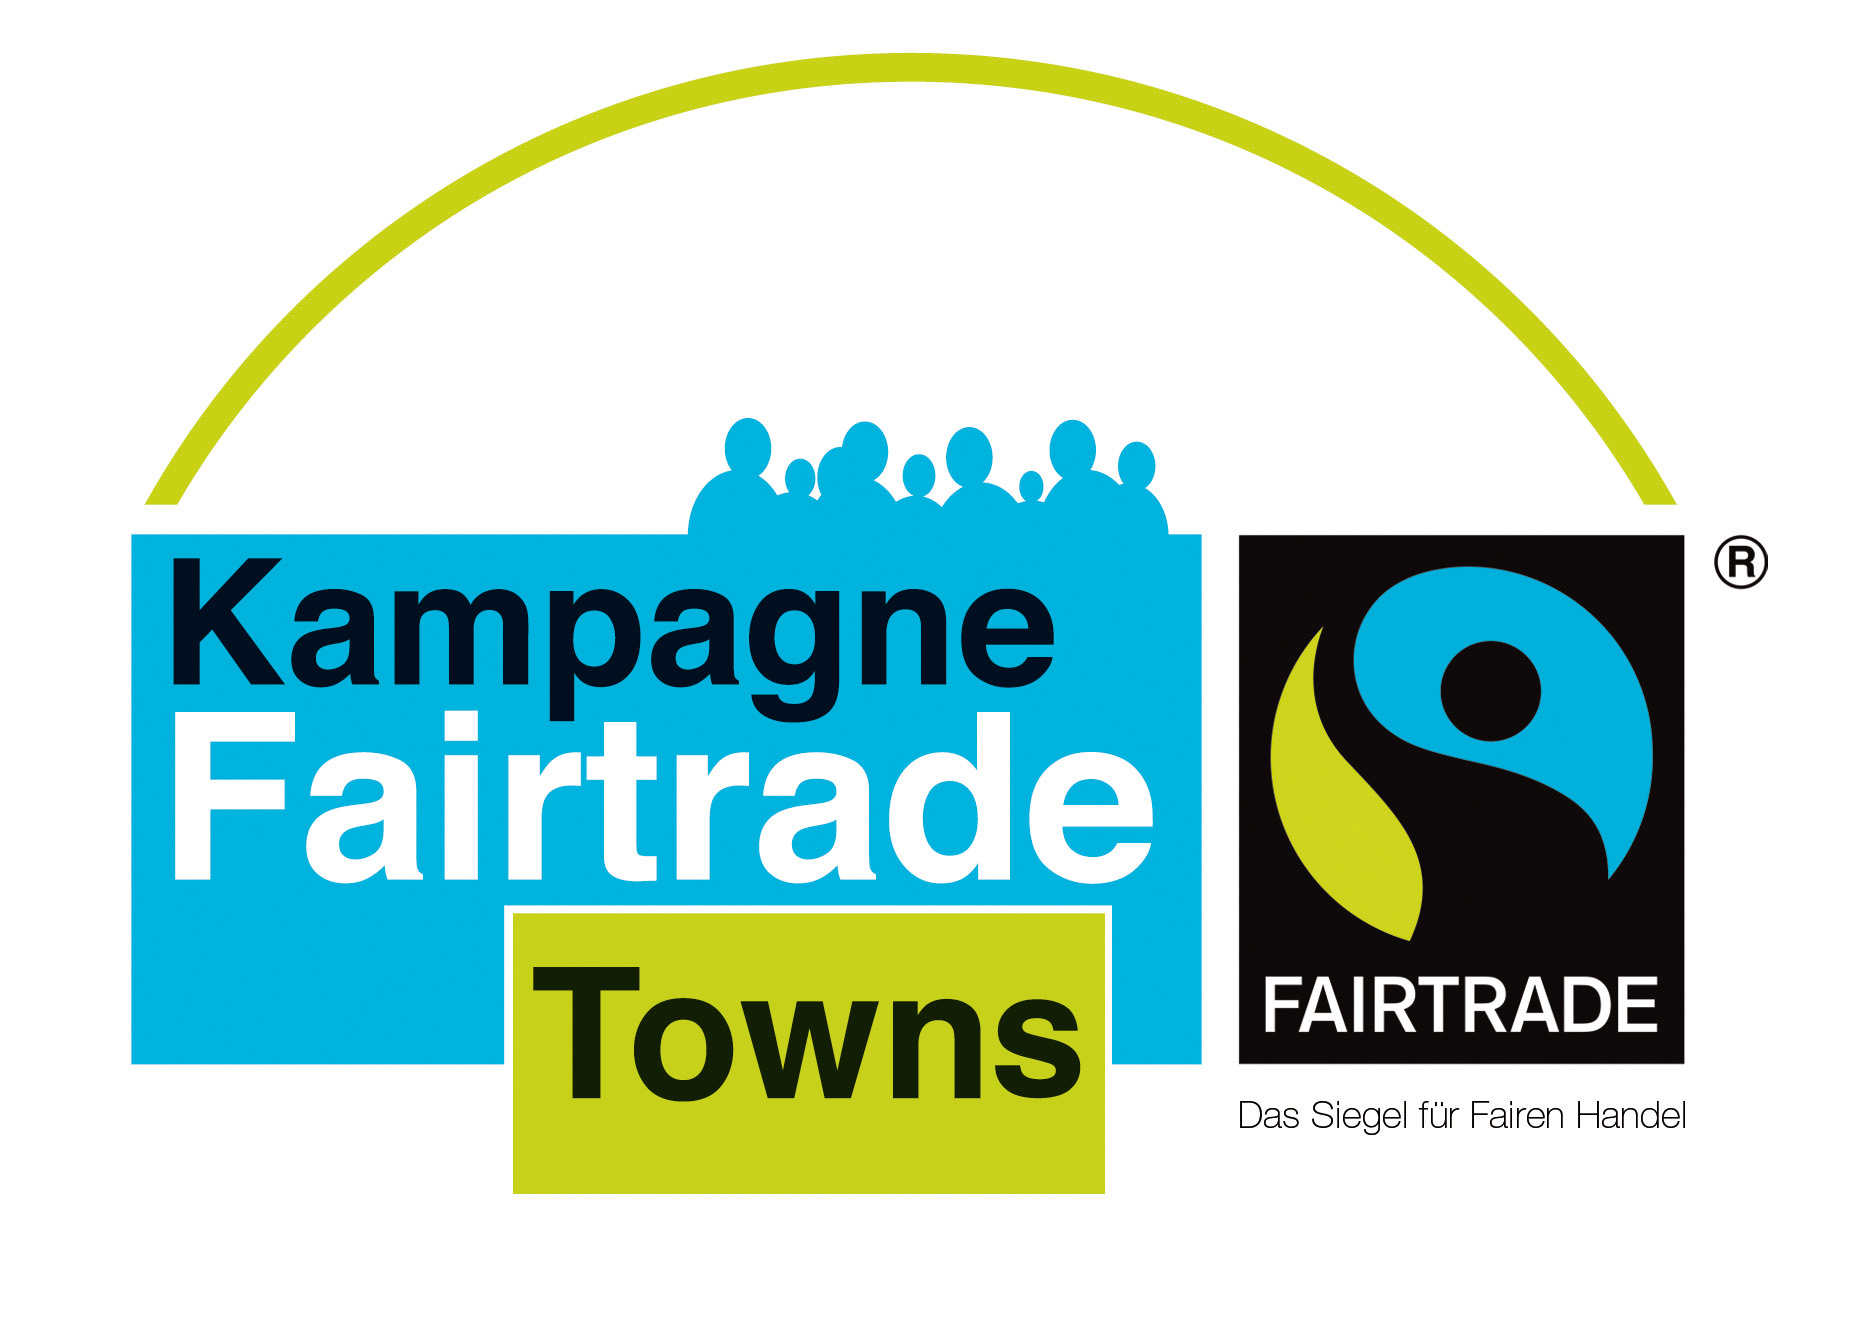 http://www.fairtrade-towns.de/fileadmin/user_upload/ft-towns/materialien/infomaterialien/fairtrade-towns_logo_WEB.jpg